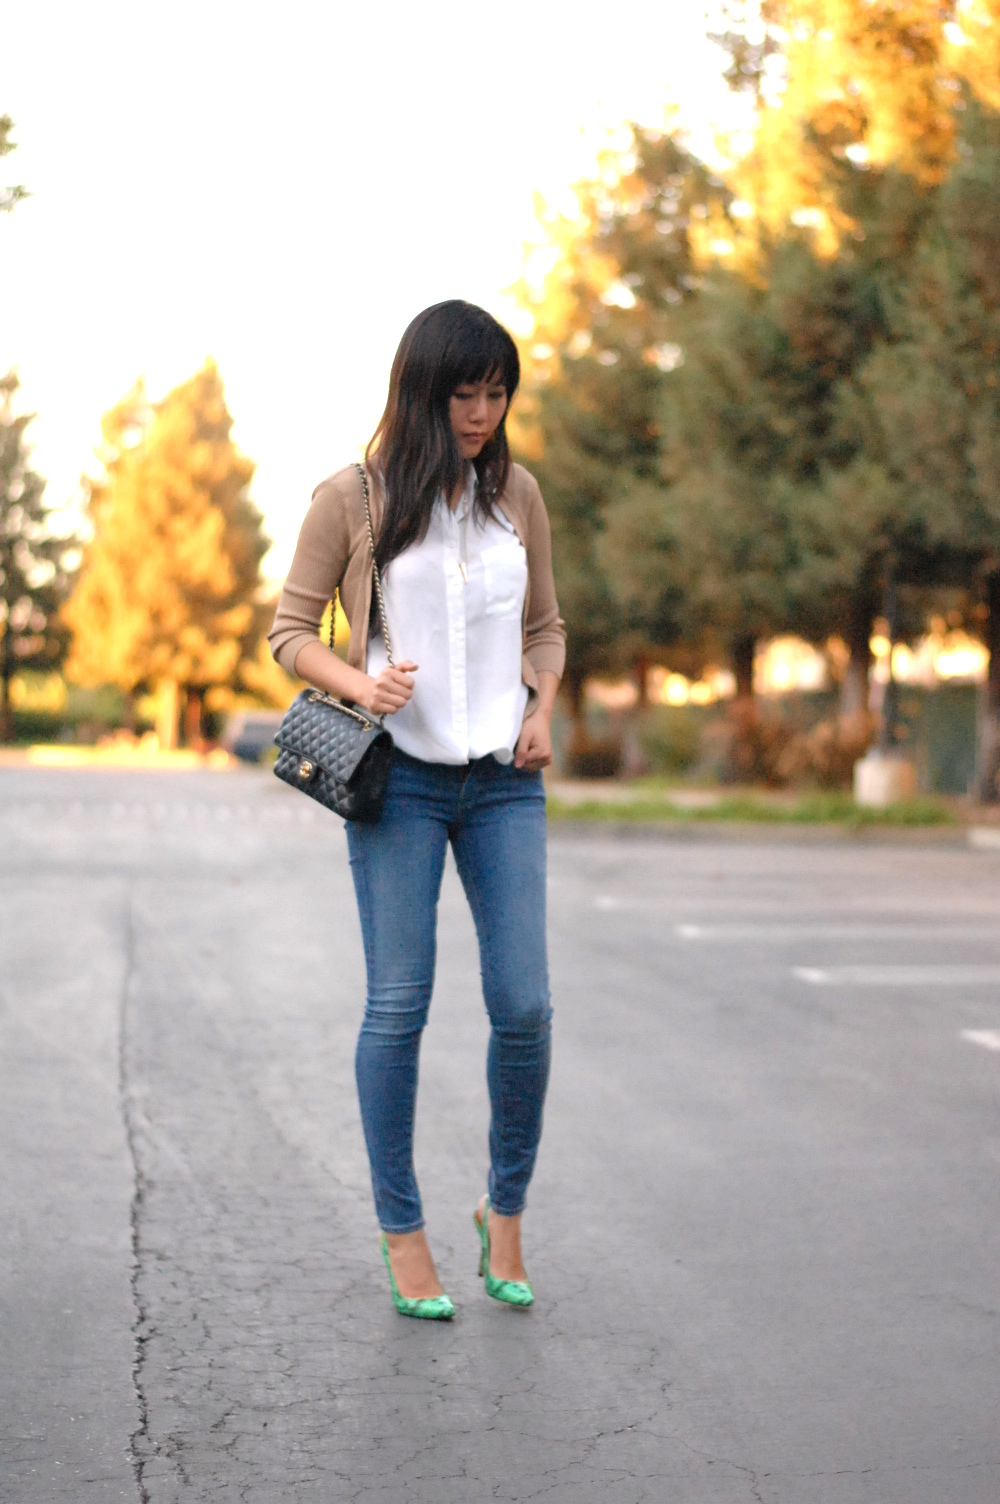 classic simple trendy outfit with statement green shoes